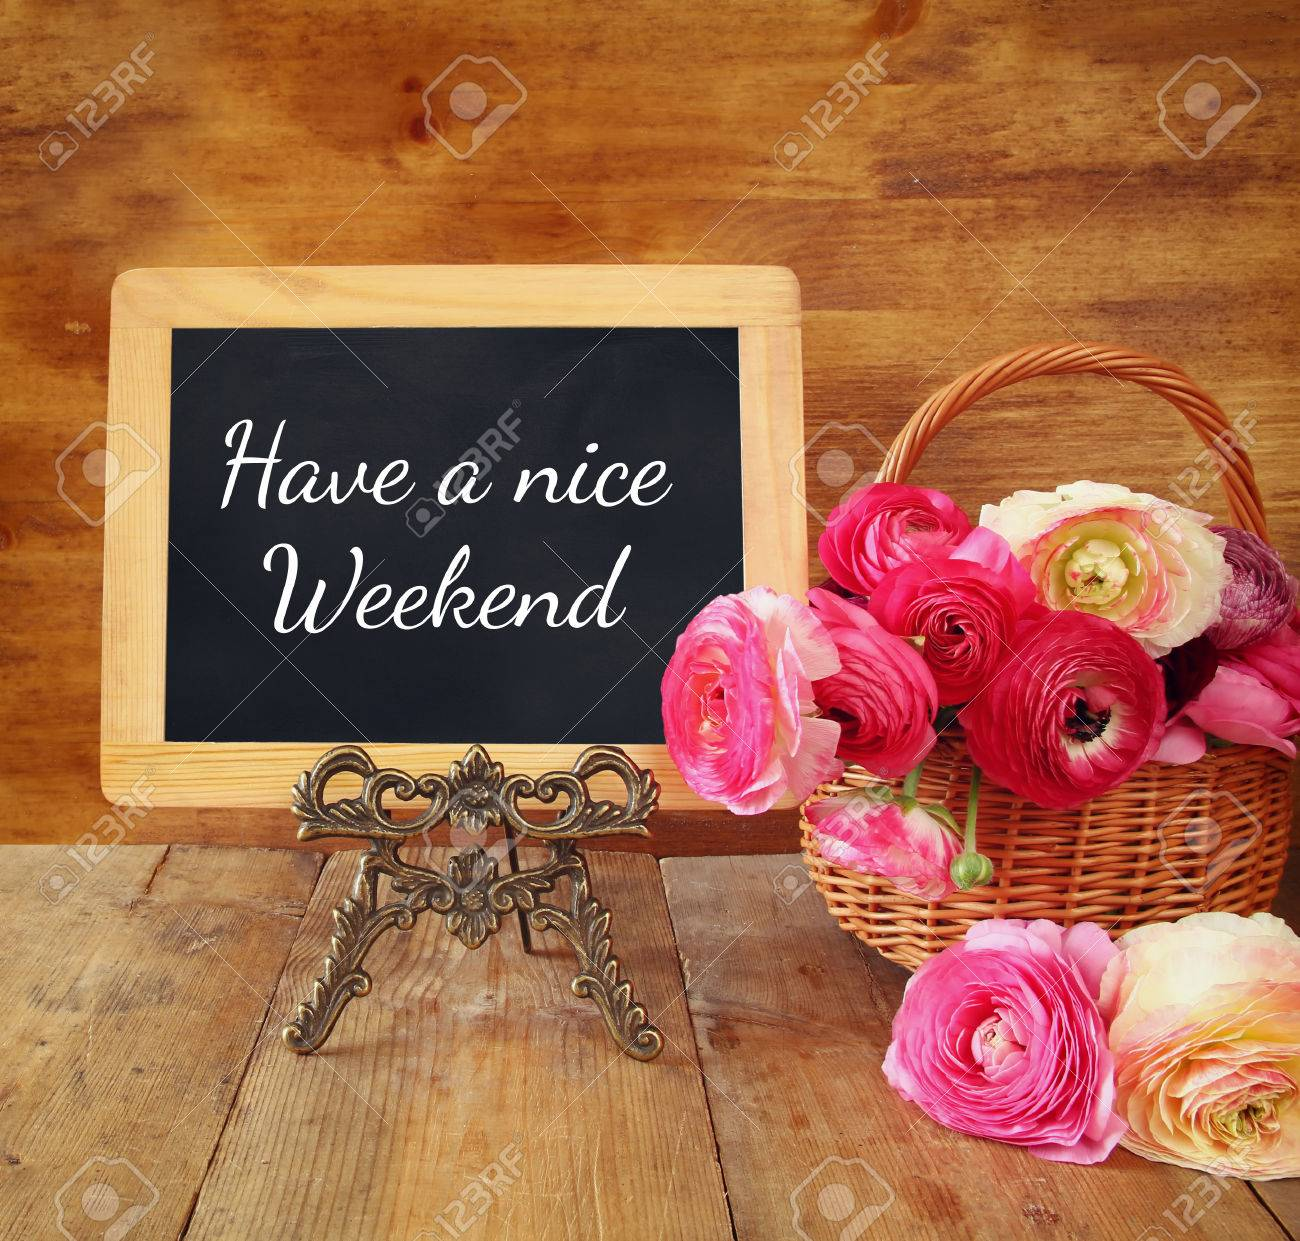 Image result for Images of have a nice weekend